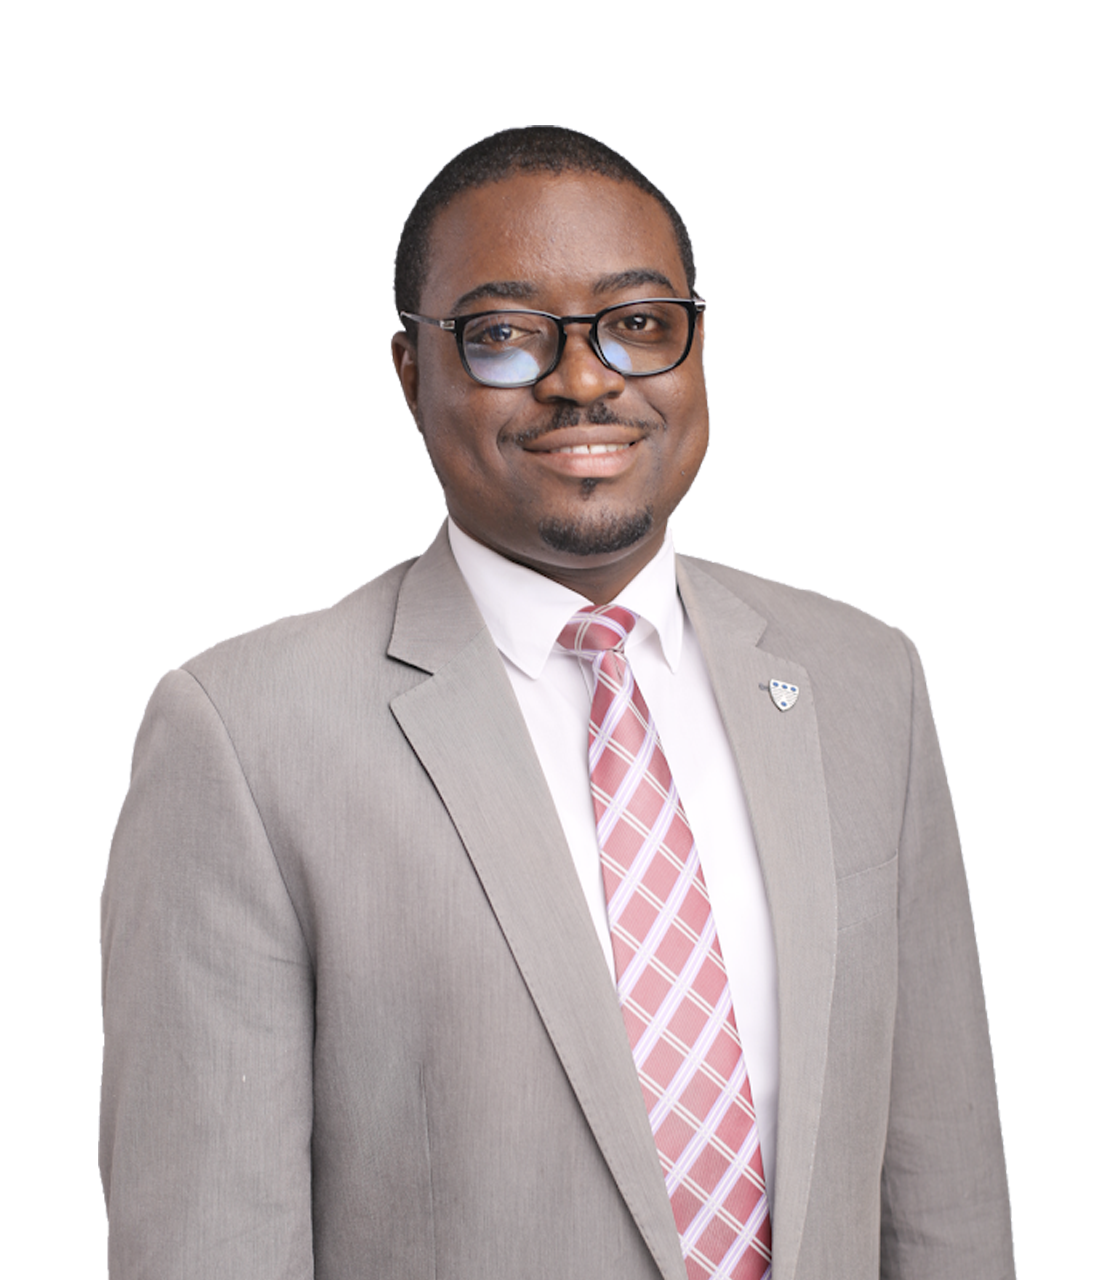 Dr. Anthony Okoeguale